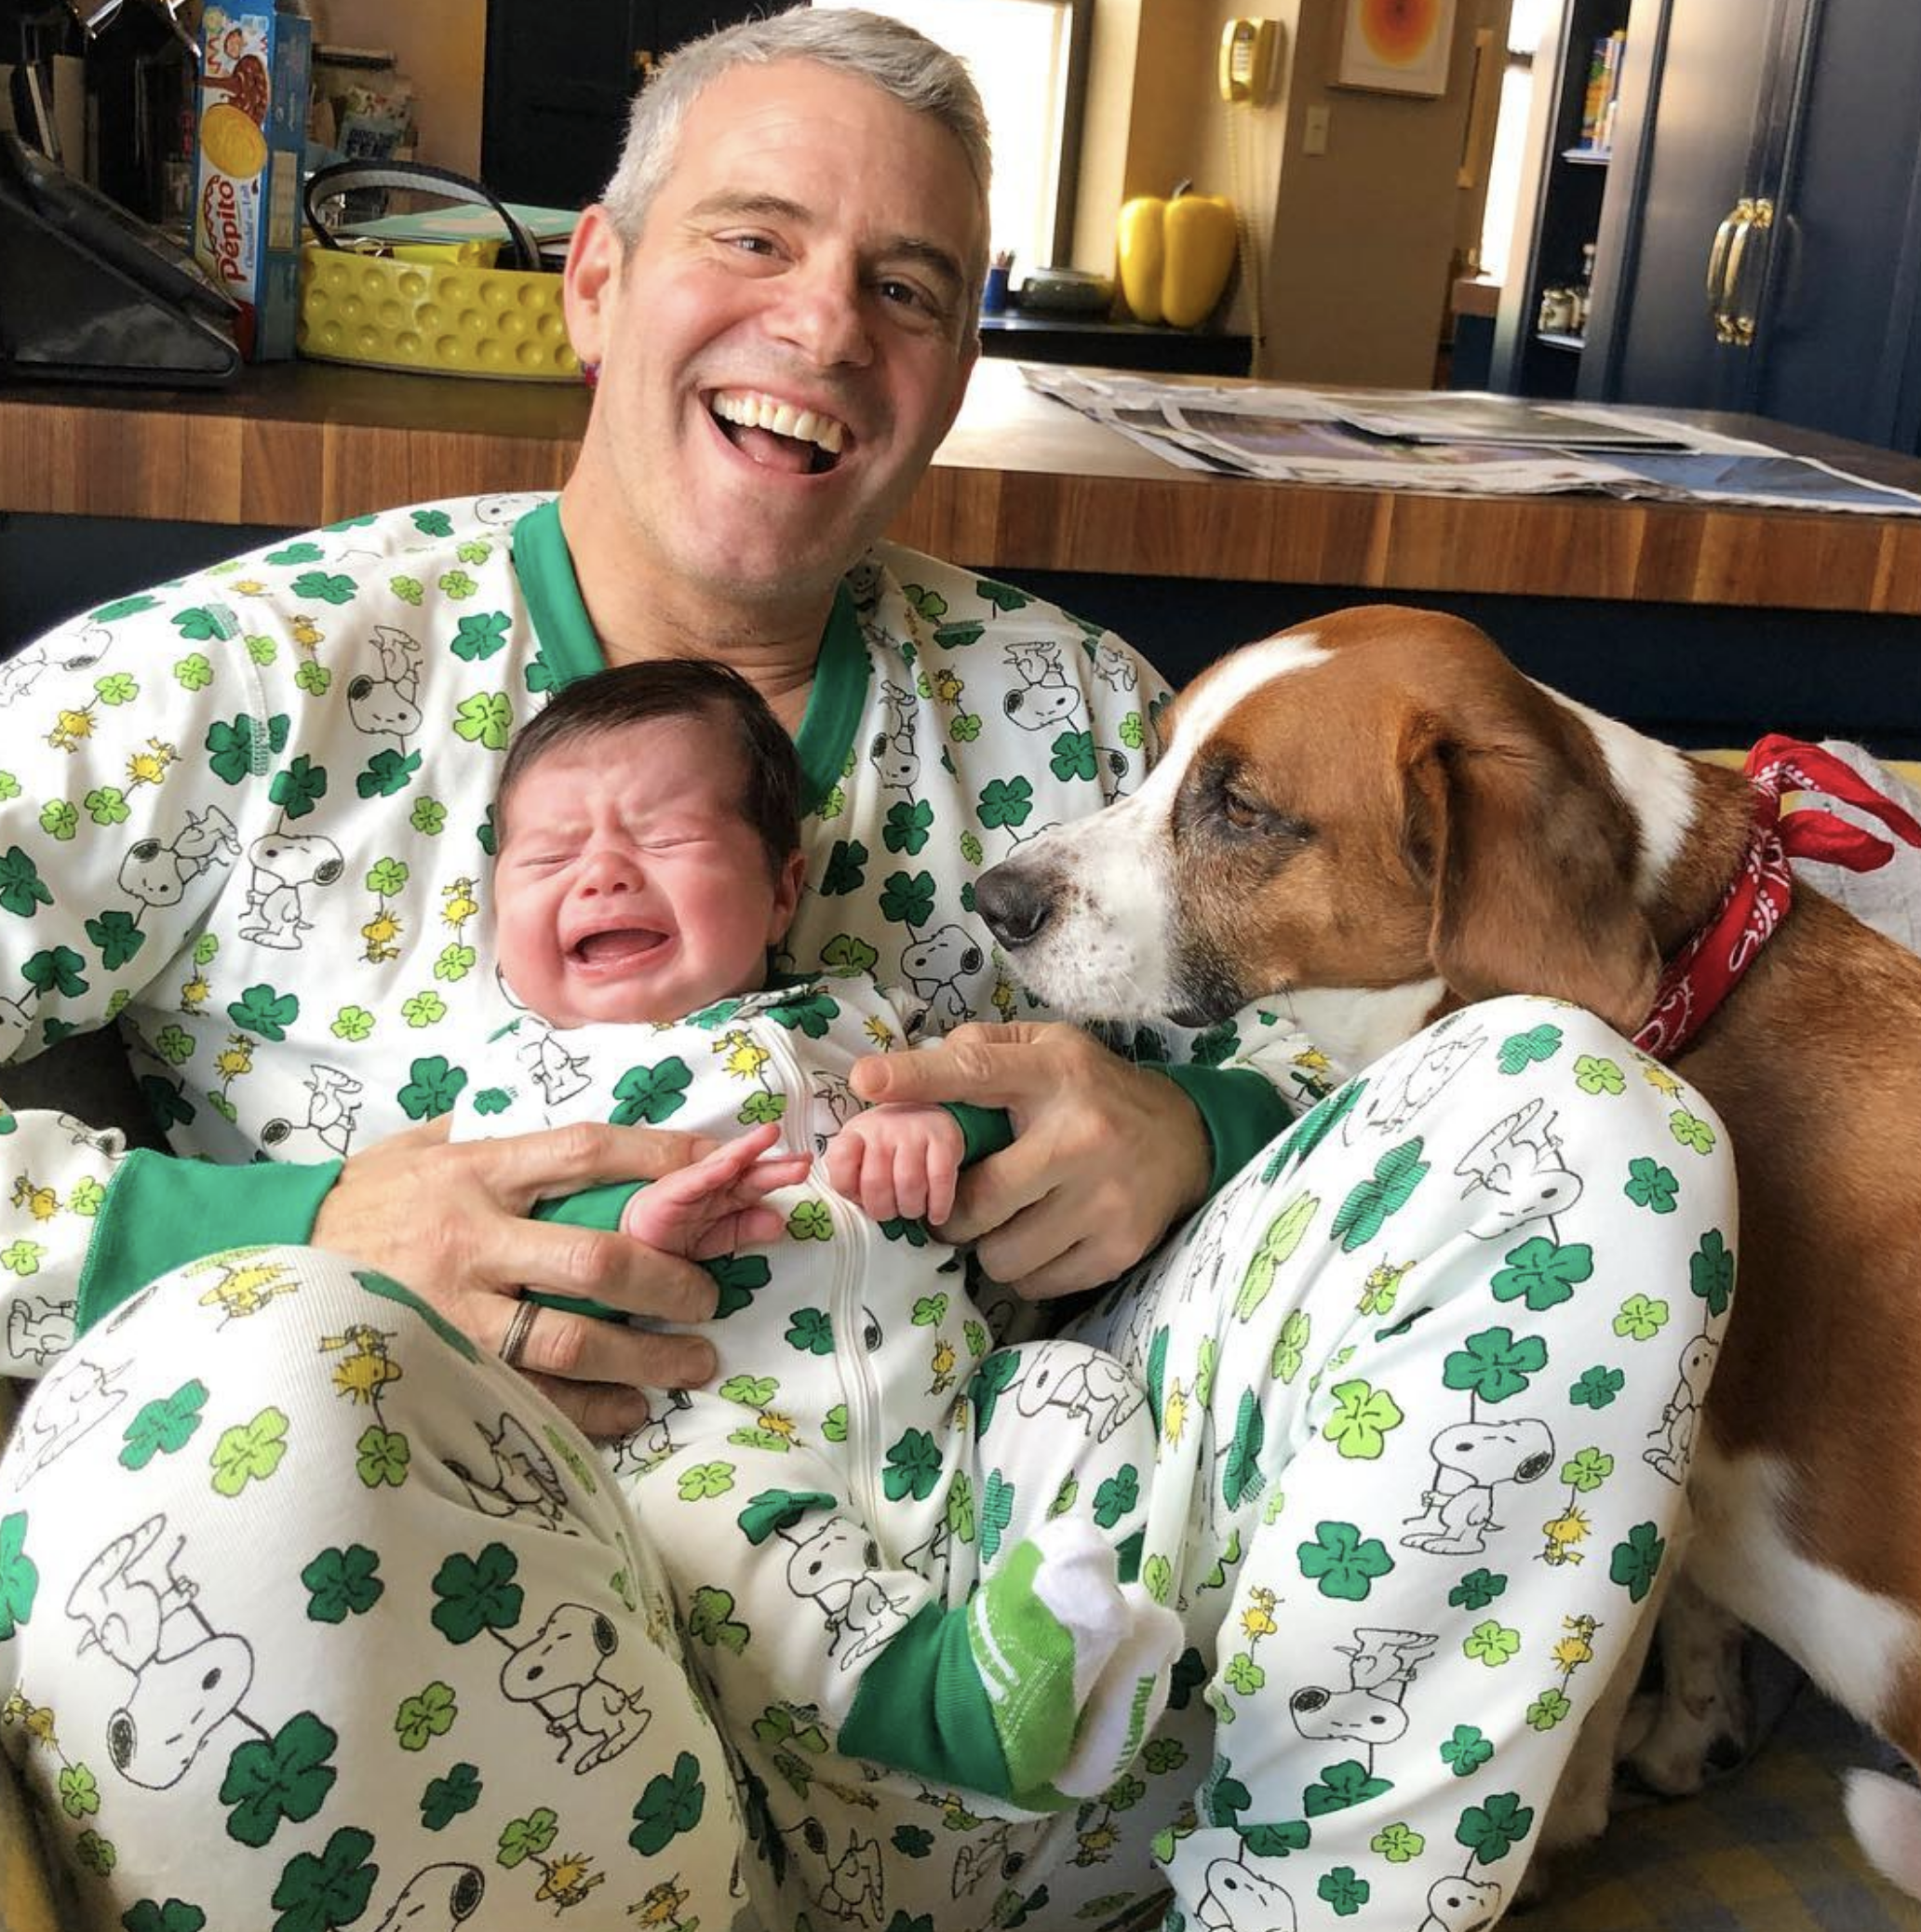 """""""Happy St. Patrick's Day!""""   Andy Cohen, who posted this photo on Instagram with son Benjamin and dog Wacha on March 17, 2019"""